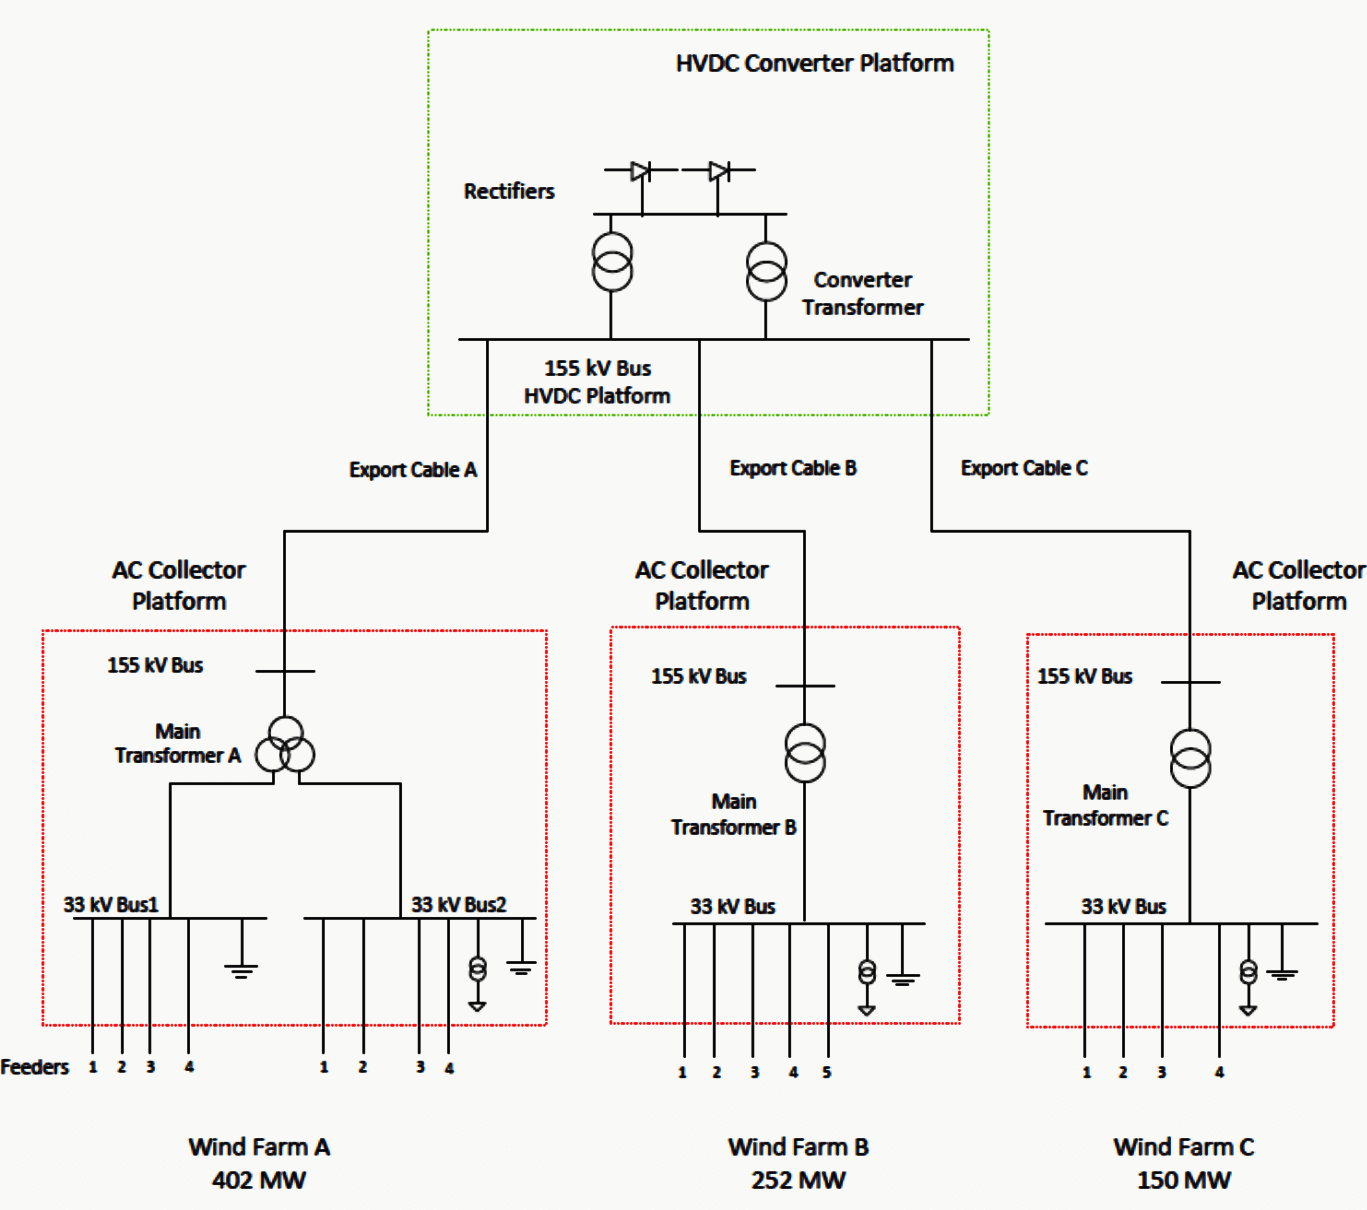 Schematic circuit diagram for offshore wind farm cluster link 33kV internal grid with AC collector platform